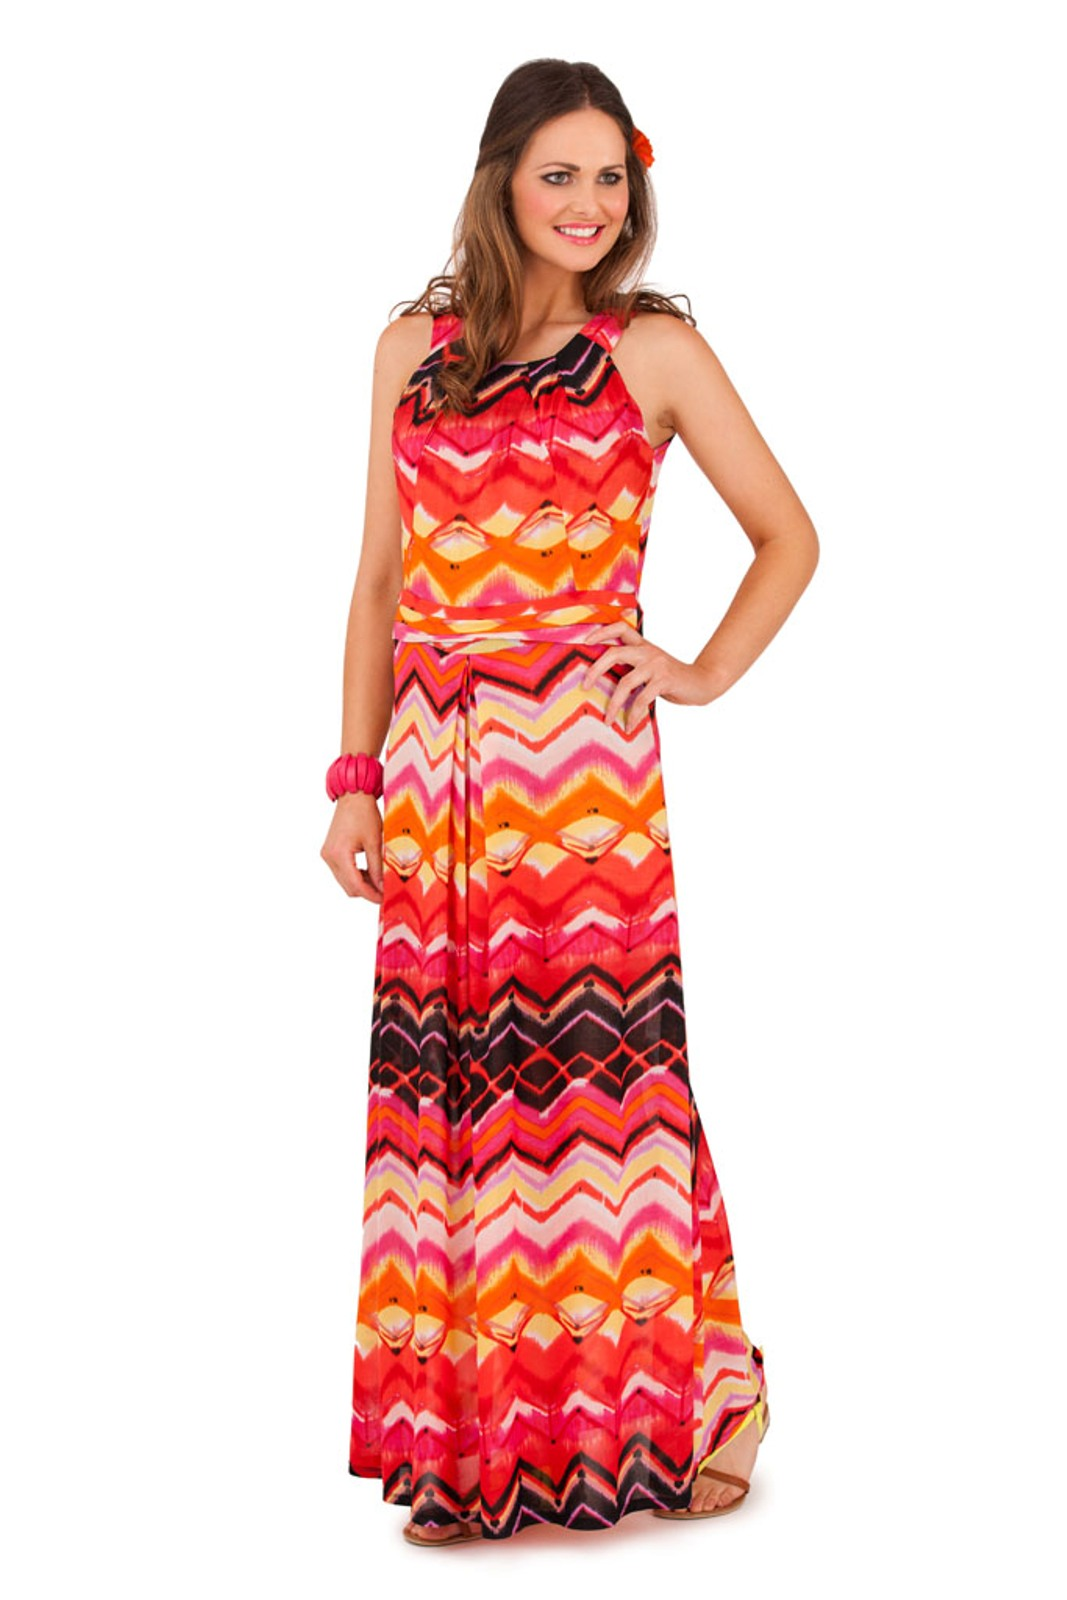 d657cb6ecd85 Womens Striped Zig Zag Strappy Maxi Full Length Summer Dress Ladies ...